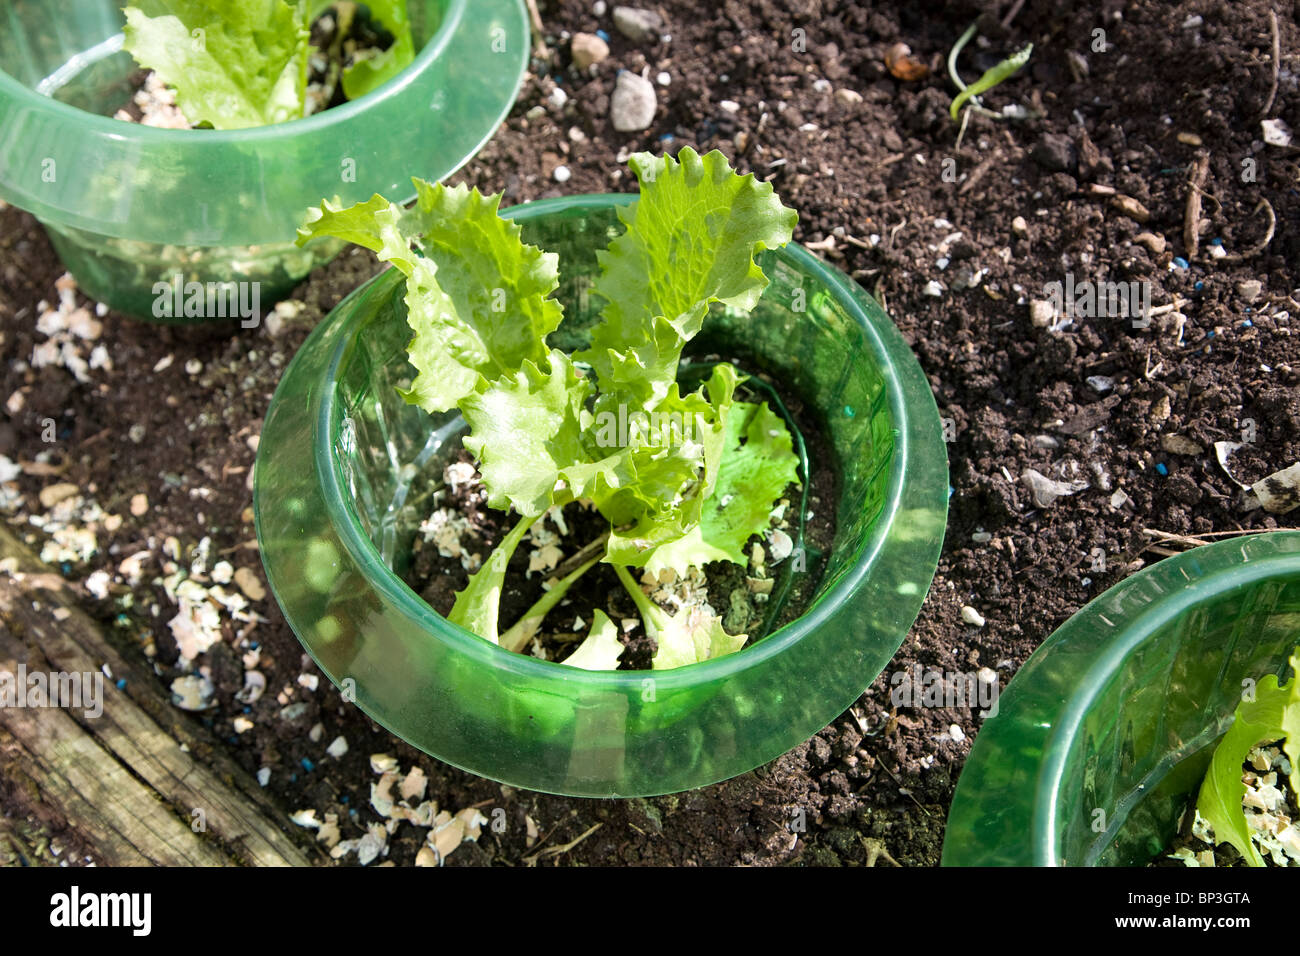 Lettuce protected from slugs by plastic rings - Stock Image